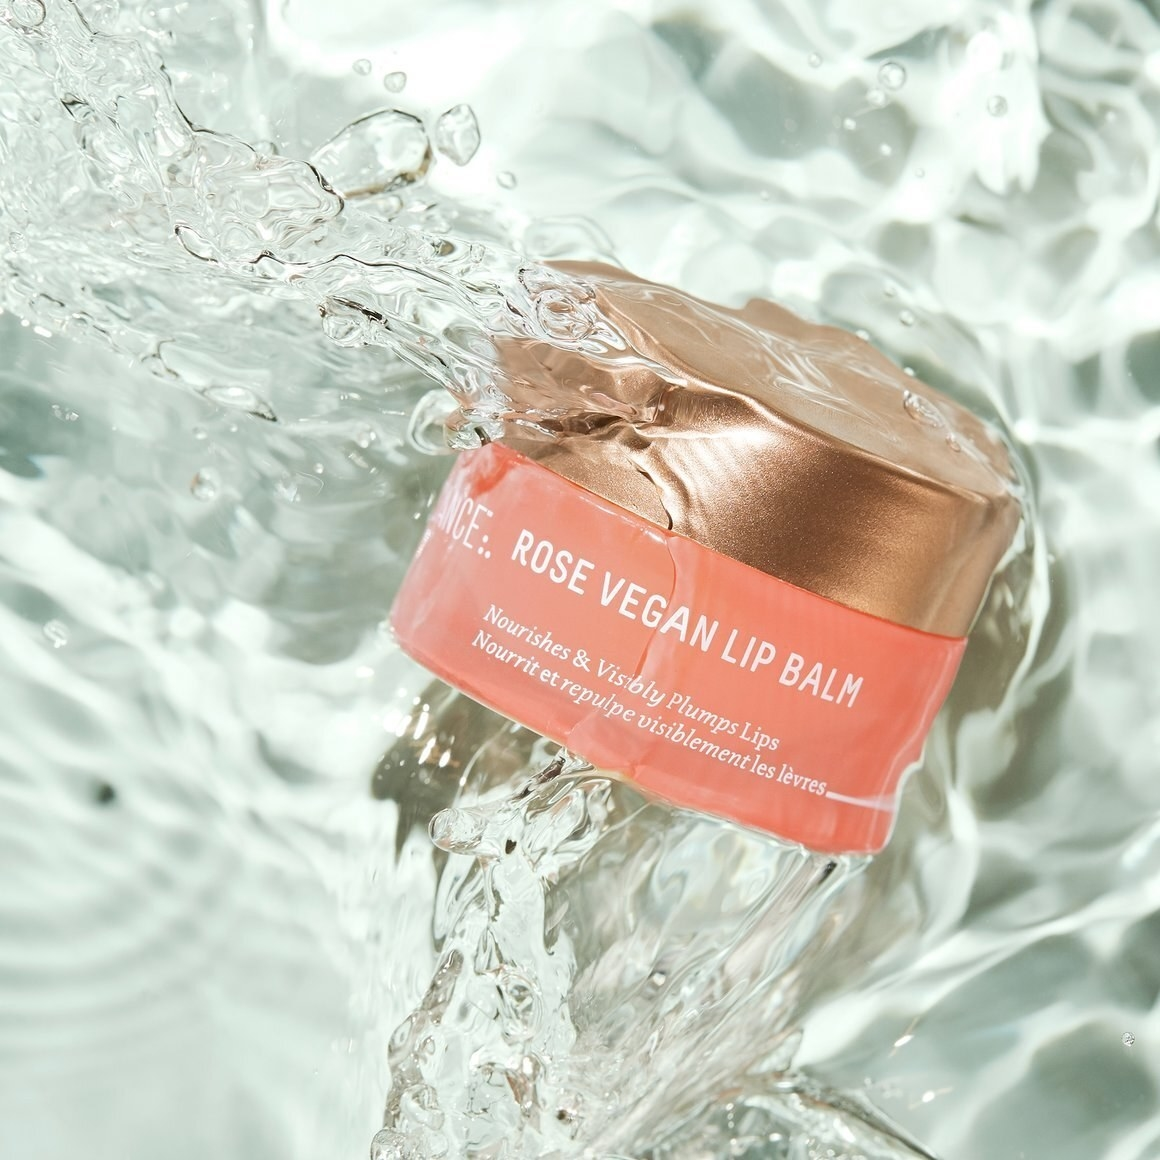 Pink and gold container of Biossance Rose Vegan Lip Balm in a water puddle